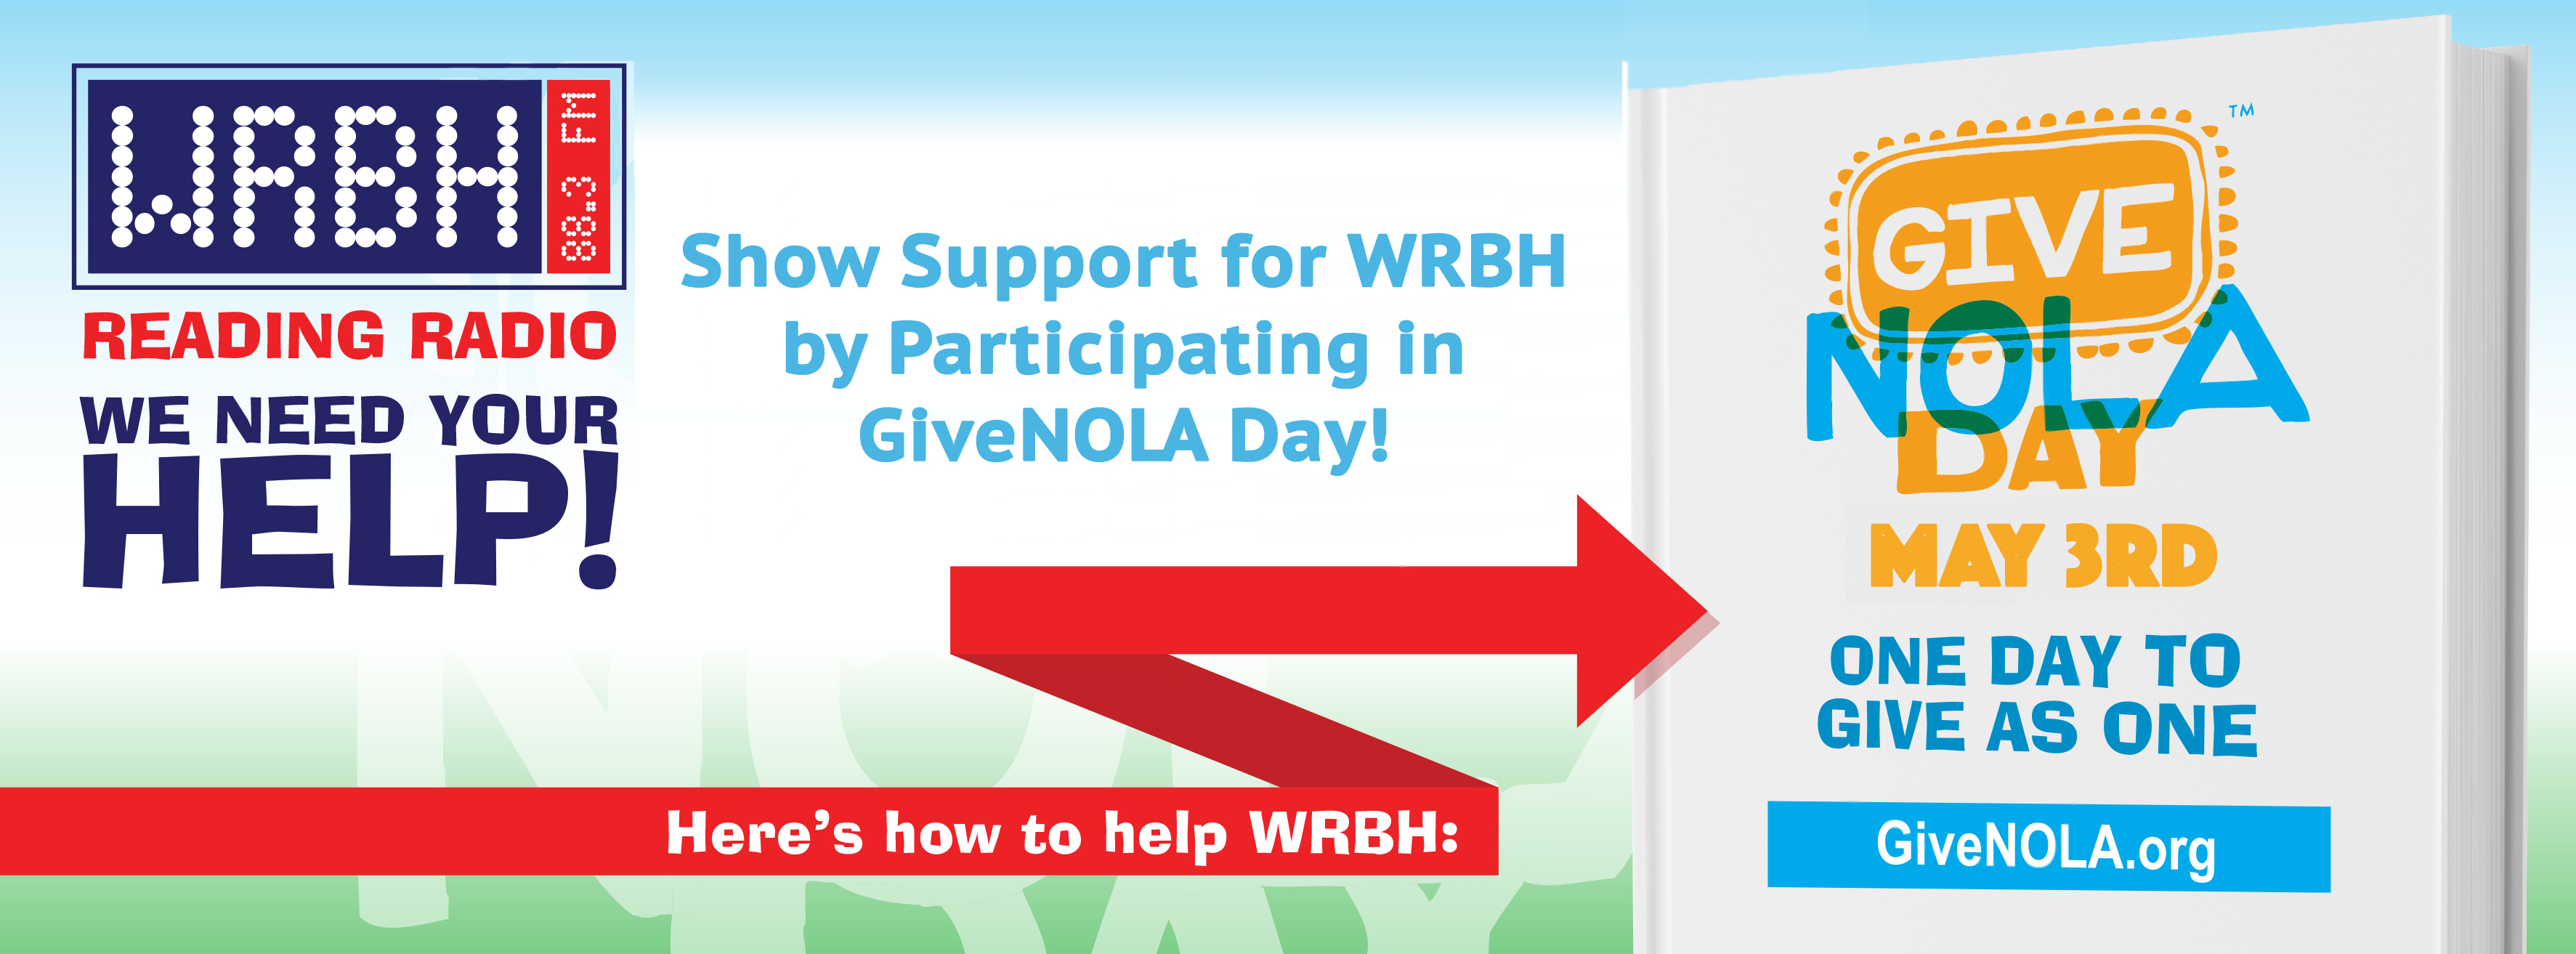 Support WRBH on GiveNOLA Day!